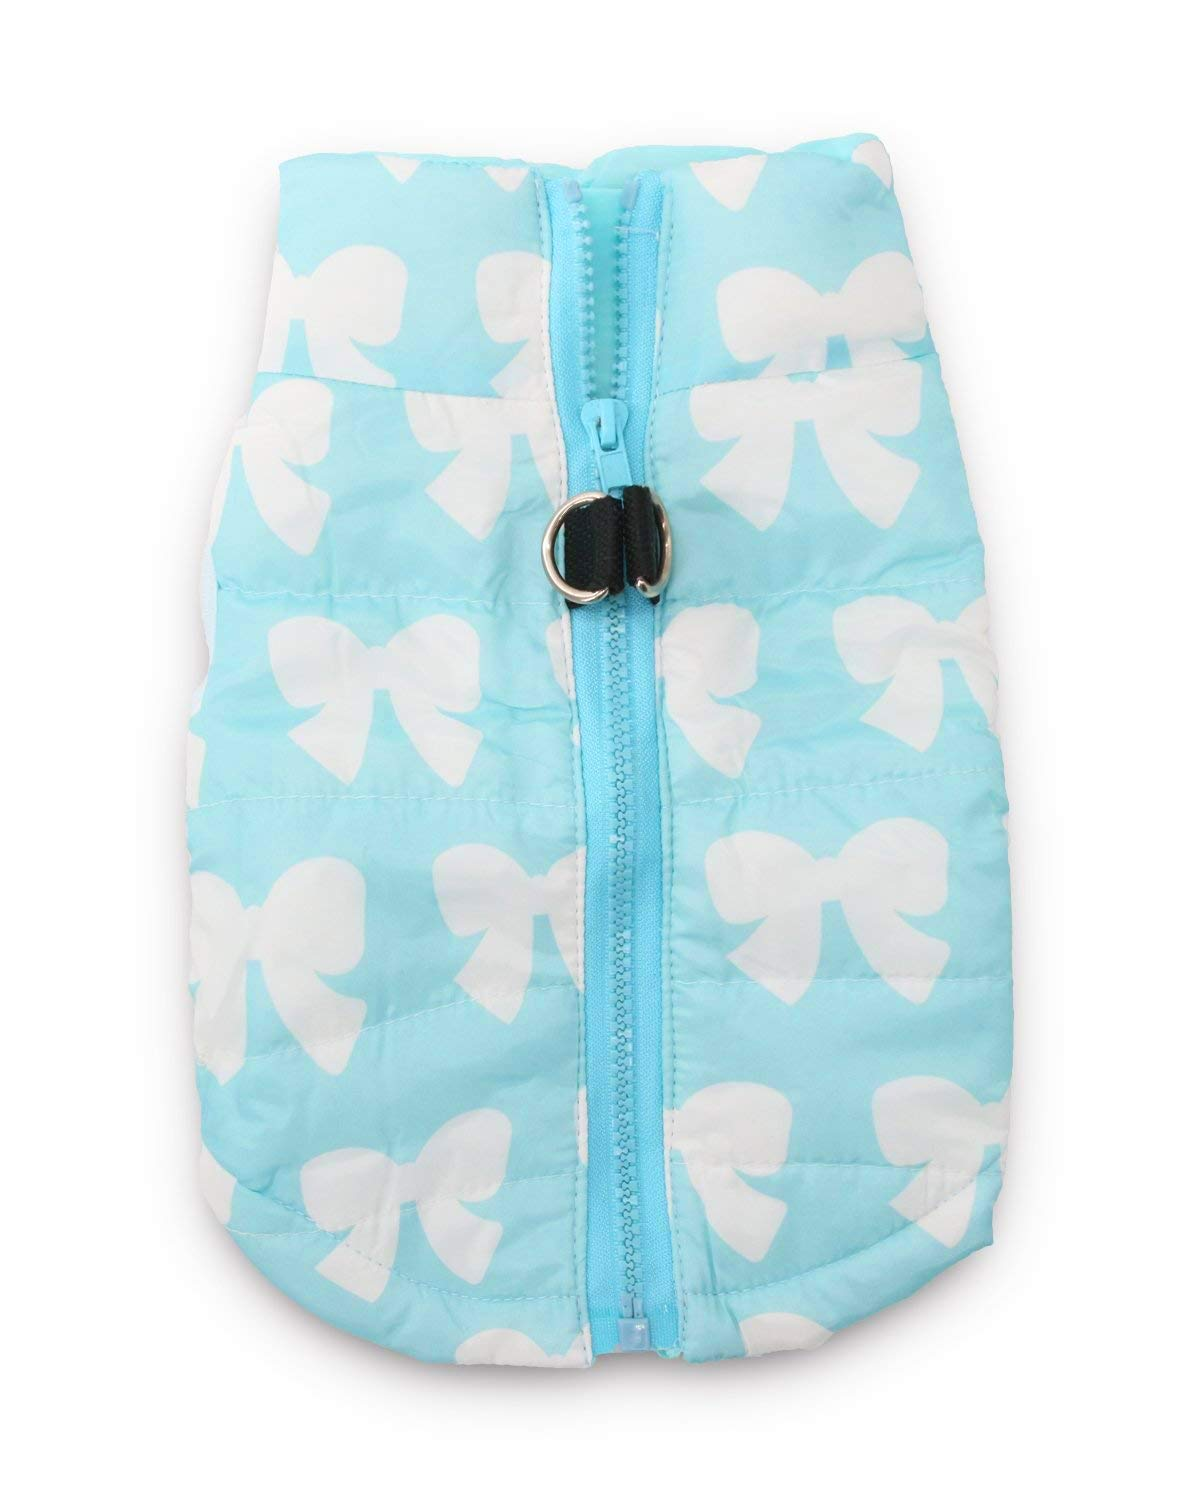 bluee Large (8.8-13.2lb) bluee Large (8.8-13.2lb) DroolingDog Puppy Jackets Dog Warm Coats for Small Dogs, Large